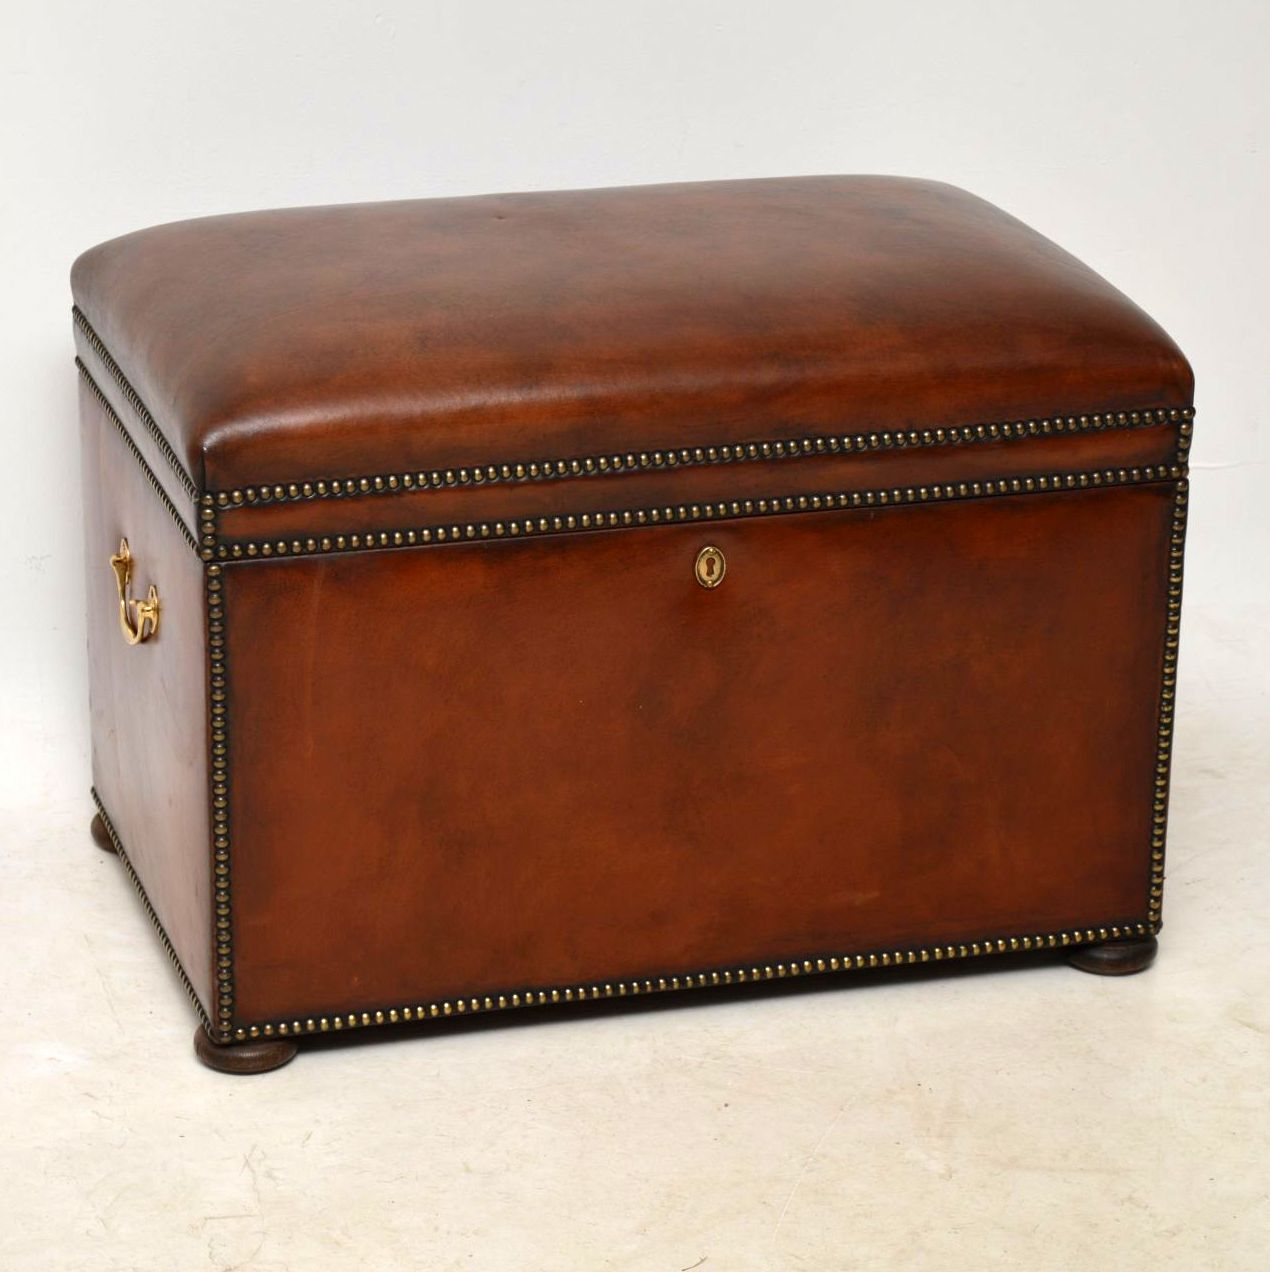 antique leather bound ottoman interior boutiques antiques for sale and mid century modern furniture french furniture antique lighting retro furniture and danish furniture